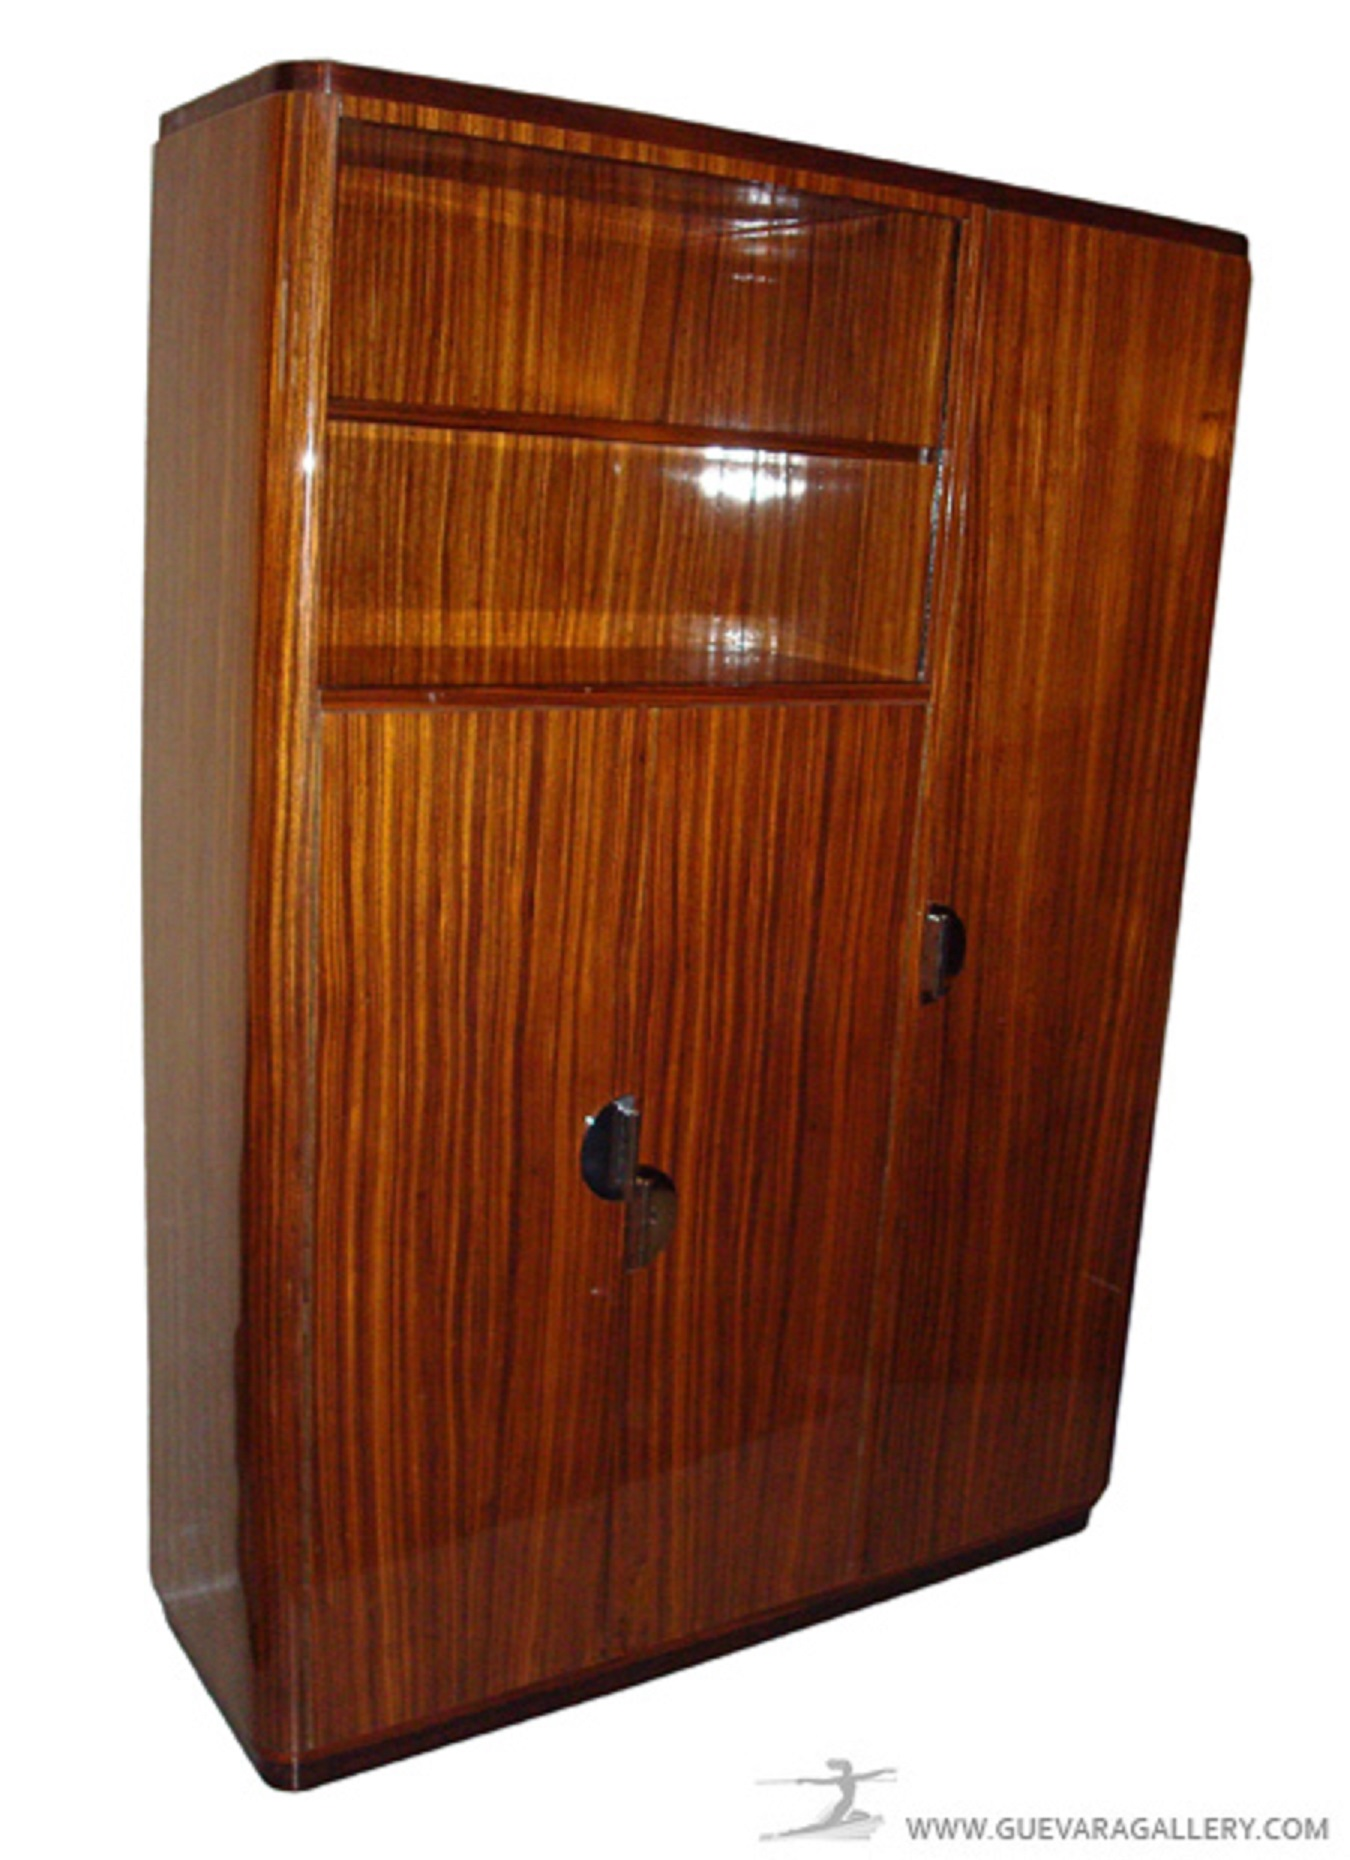 Bibliotheque Deco French Art Deco Bibliotheque Cabinet Modernism